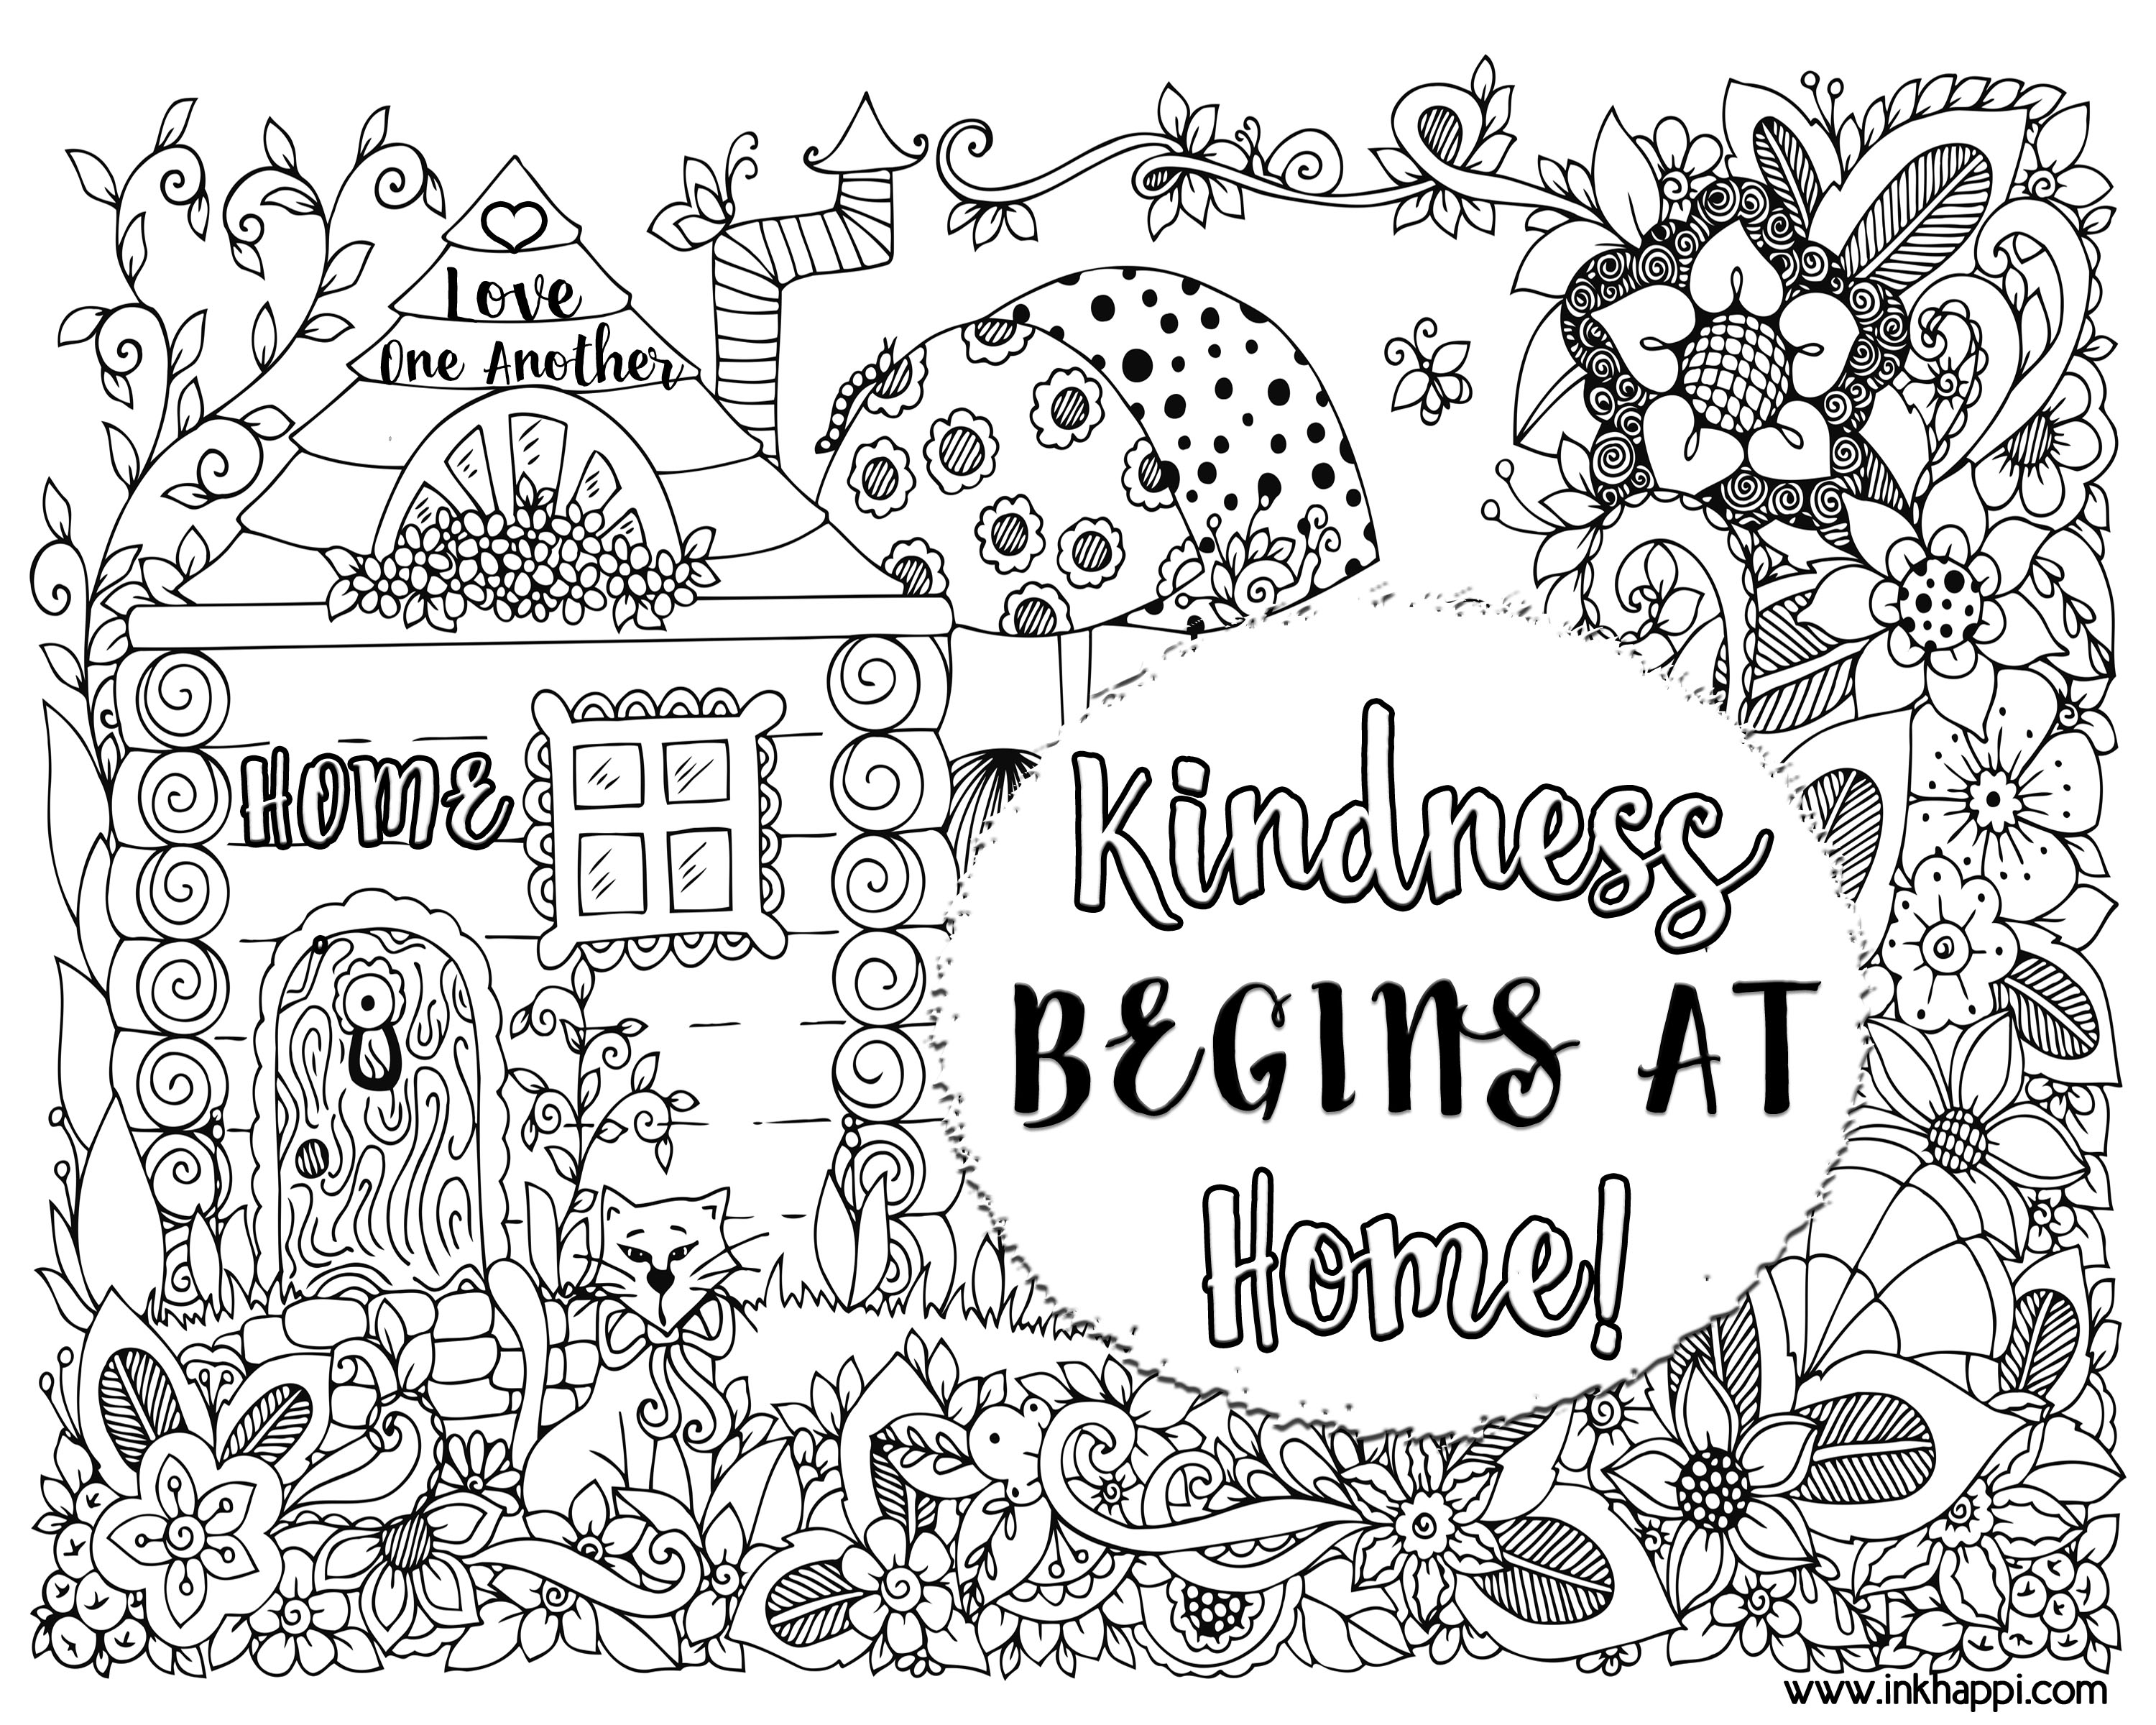 Kindness Begins at Home A Coloring